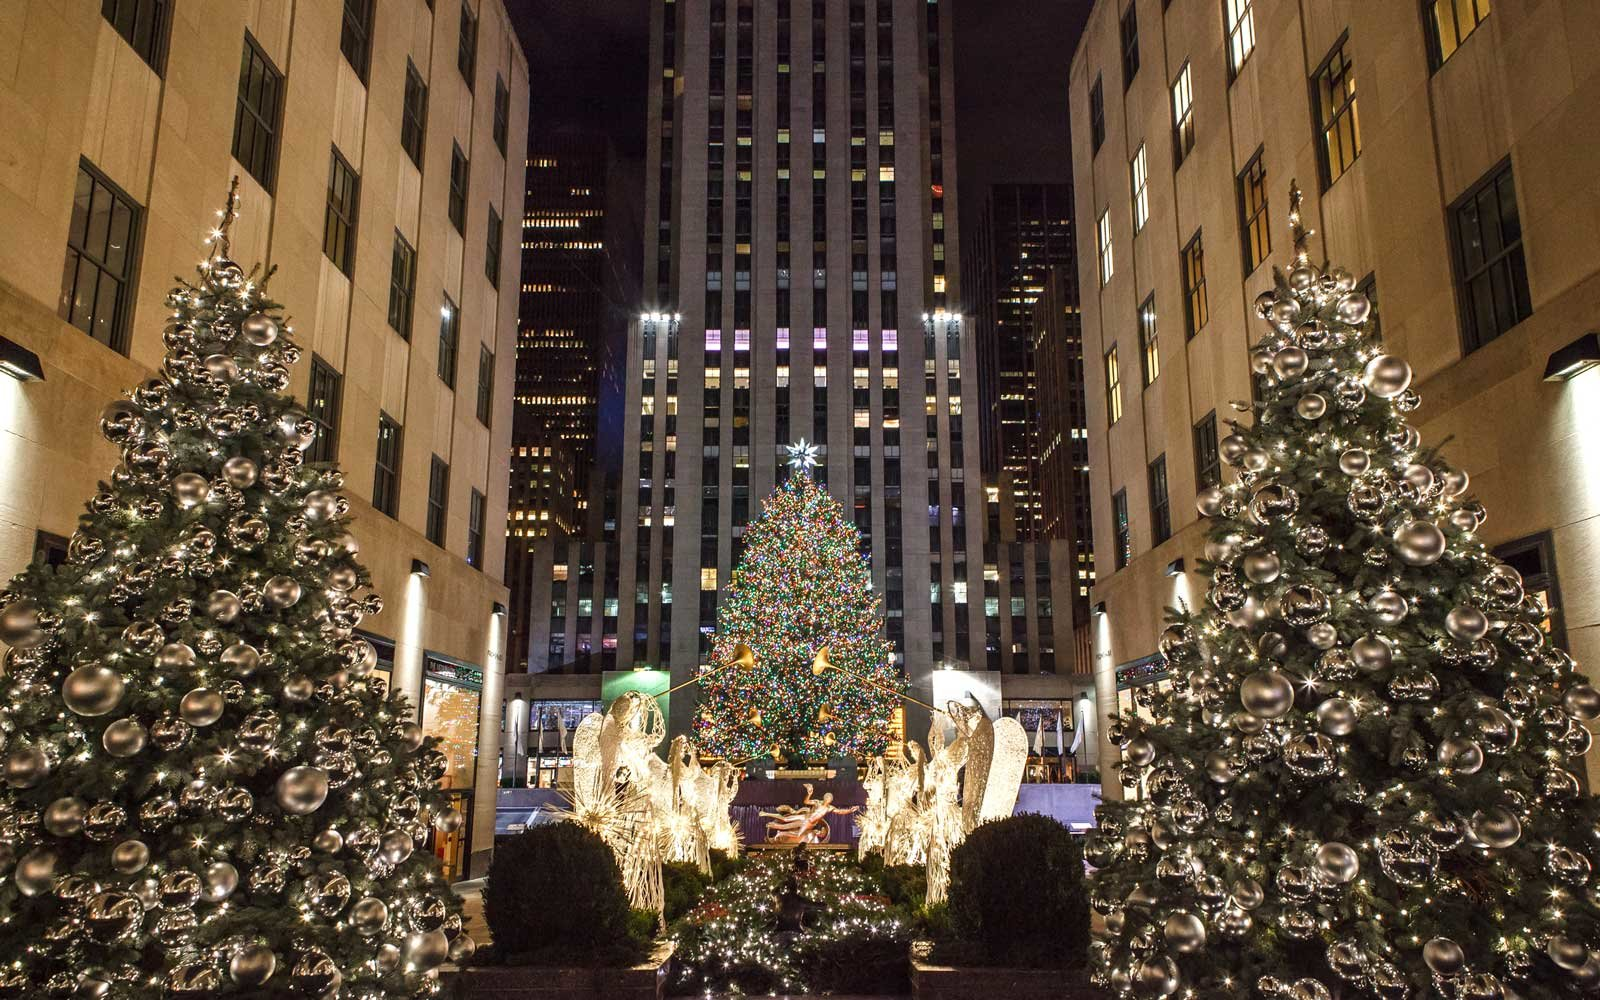 Where Is The Rockefeller Christmas Tree Coming From 2019 The 2019 Rockefeller Center Christmas Tree Is From Orange County